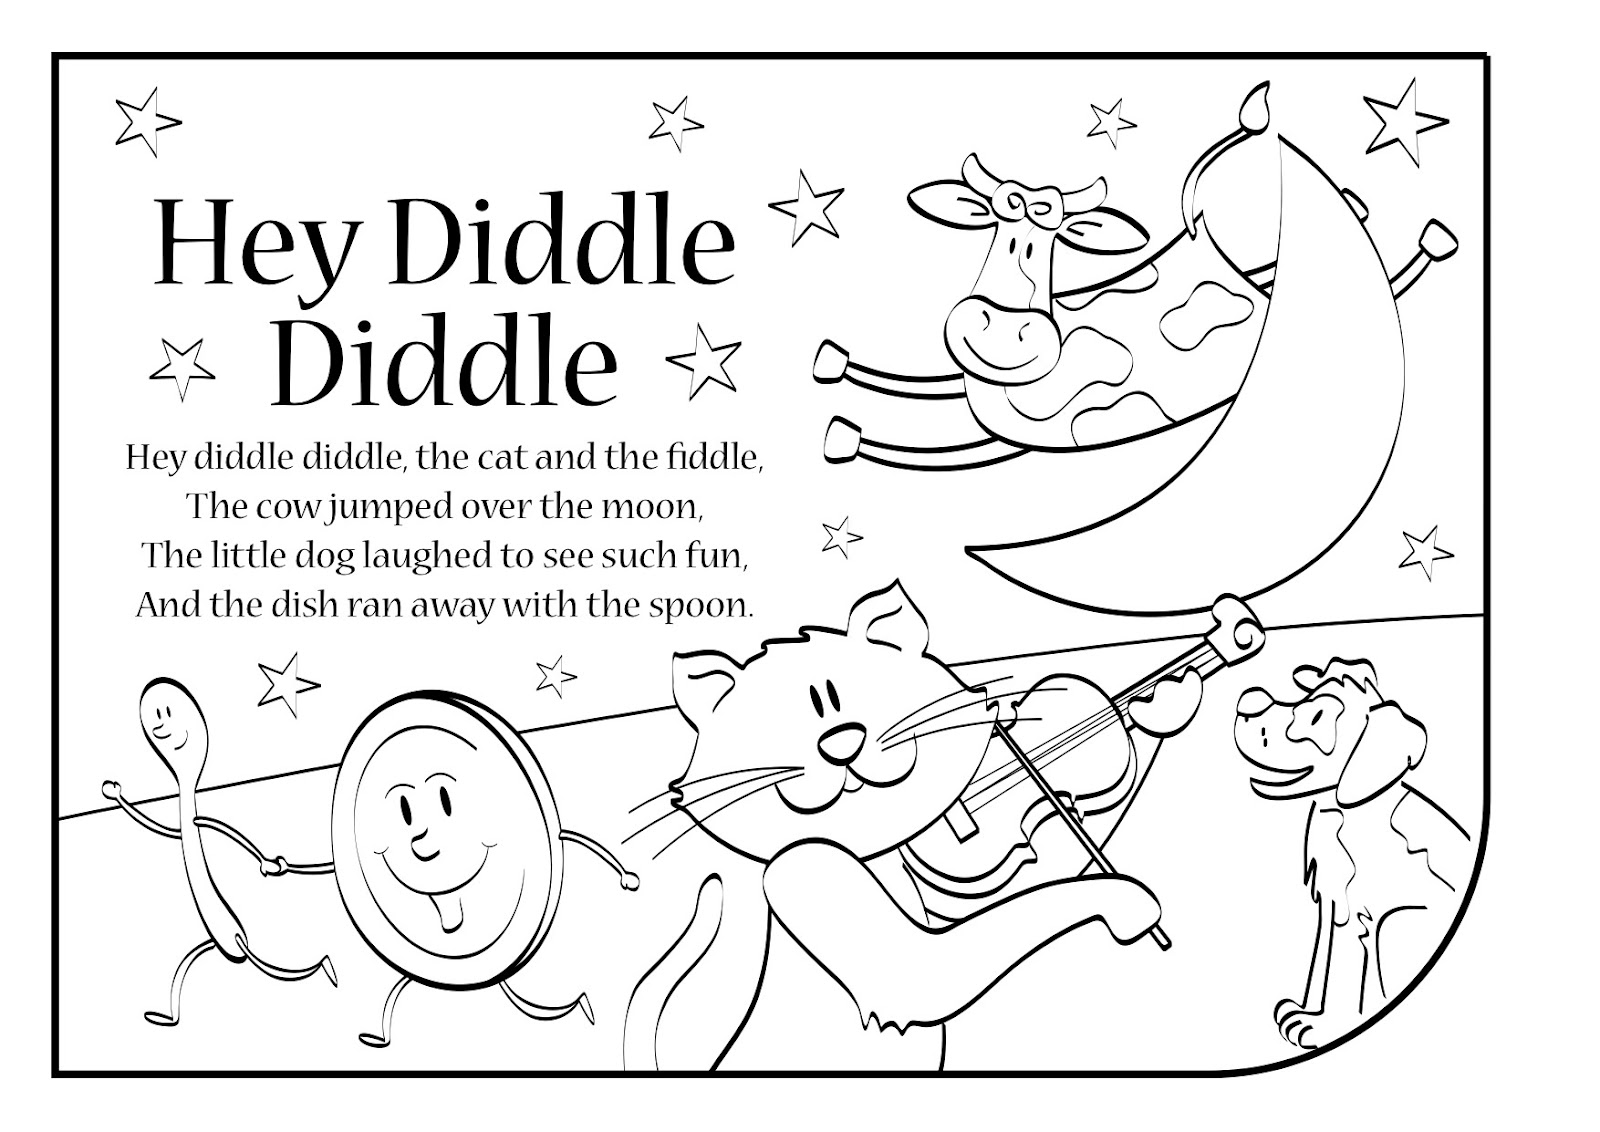 hey diddle diddle coloring pages | ENGLISH SONGS AND RHYMES: LYRICS